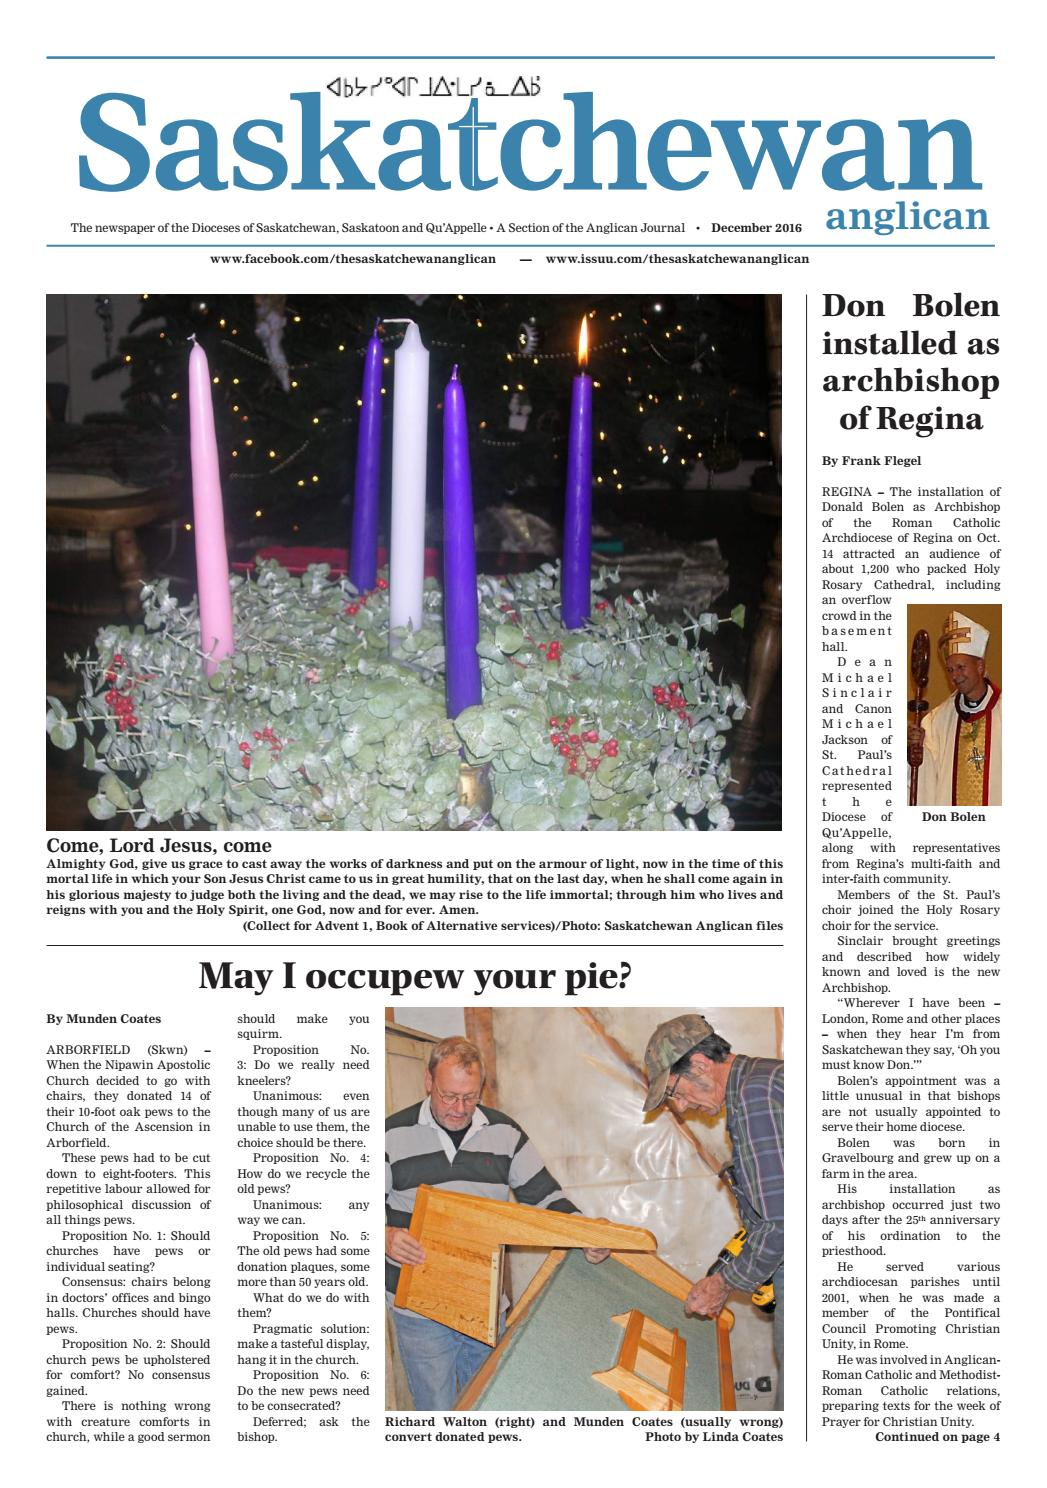 The saskatchewan anglican december 2016 by the saskatchewan the saskatchewan anglican december 2016 by the saskatchewan anglican issuu aiddatafo Image collections